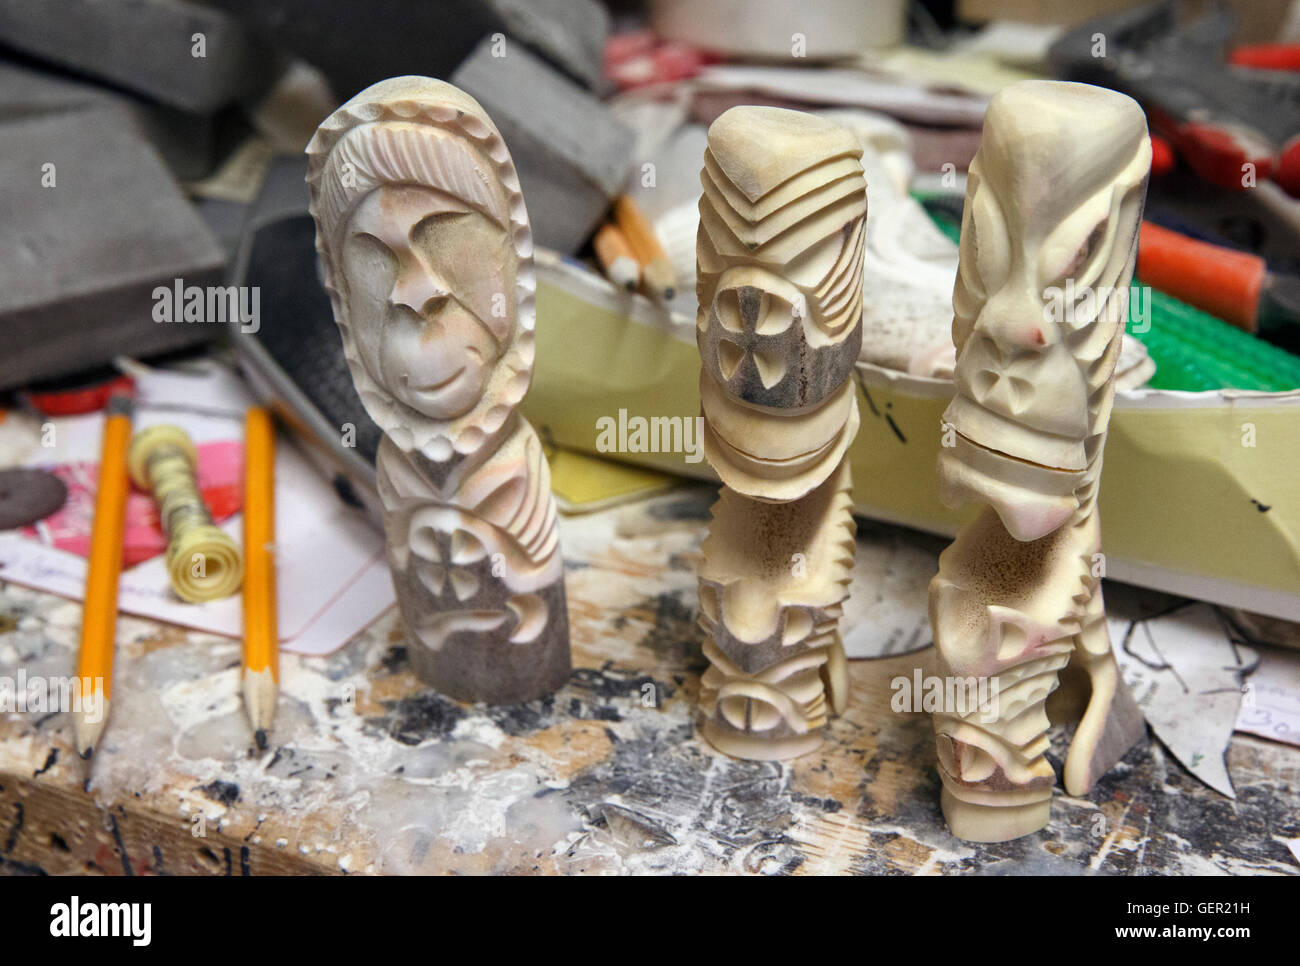 Inuit Bone Carving High Resolution Stock Photography And Images Alamy